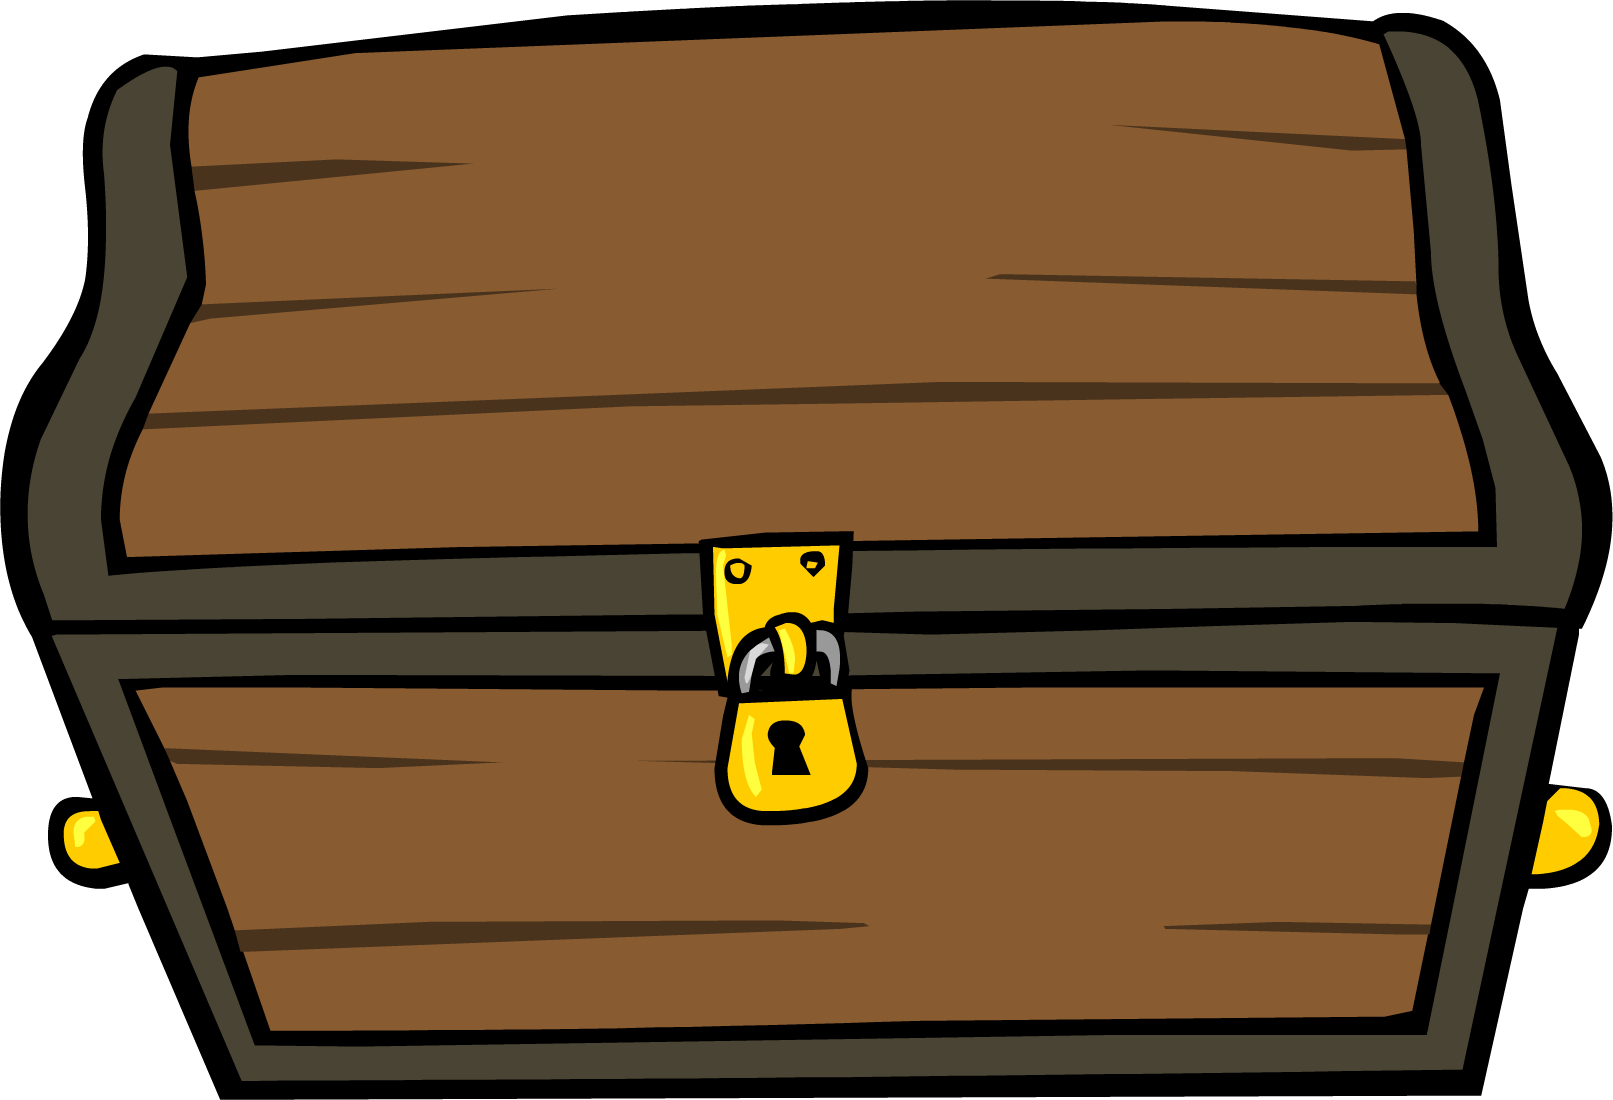 treasure chest club penguin wiki fandom powered by wikia snowball fight clip art snowball clipart png